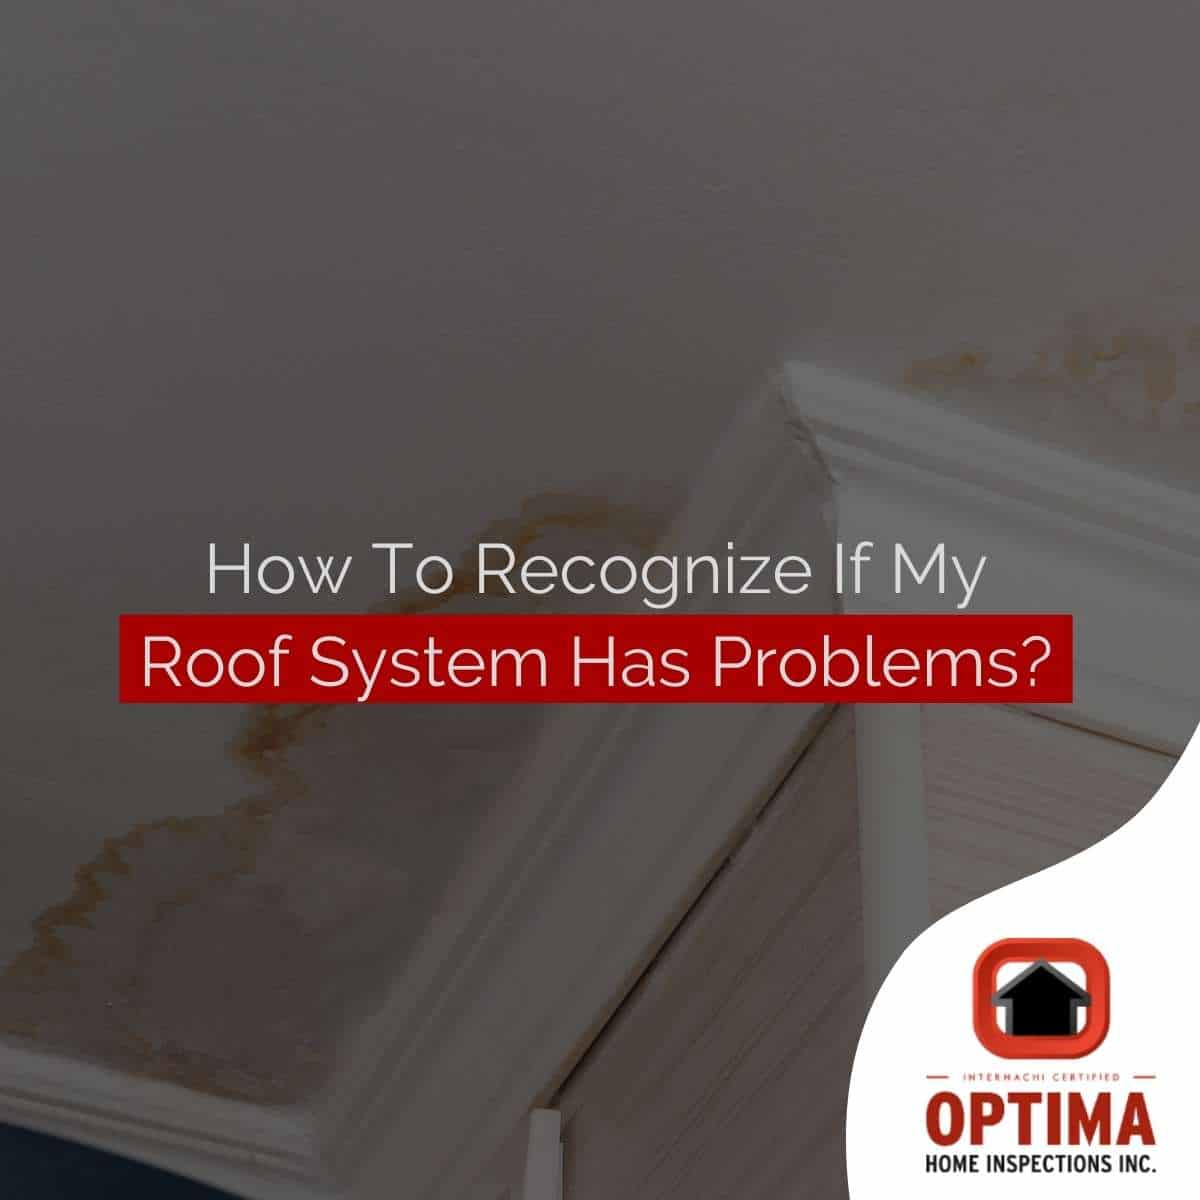 How To Recognize If My Roof System Has Problems?